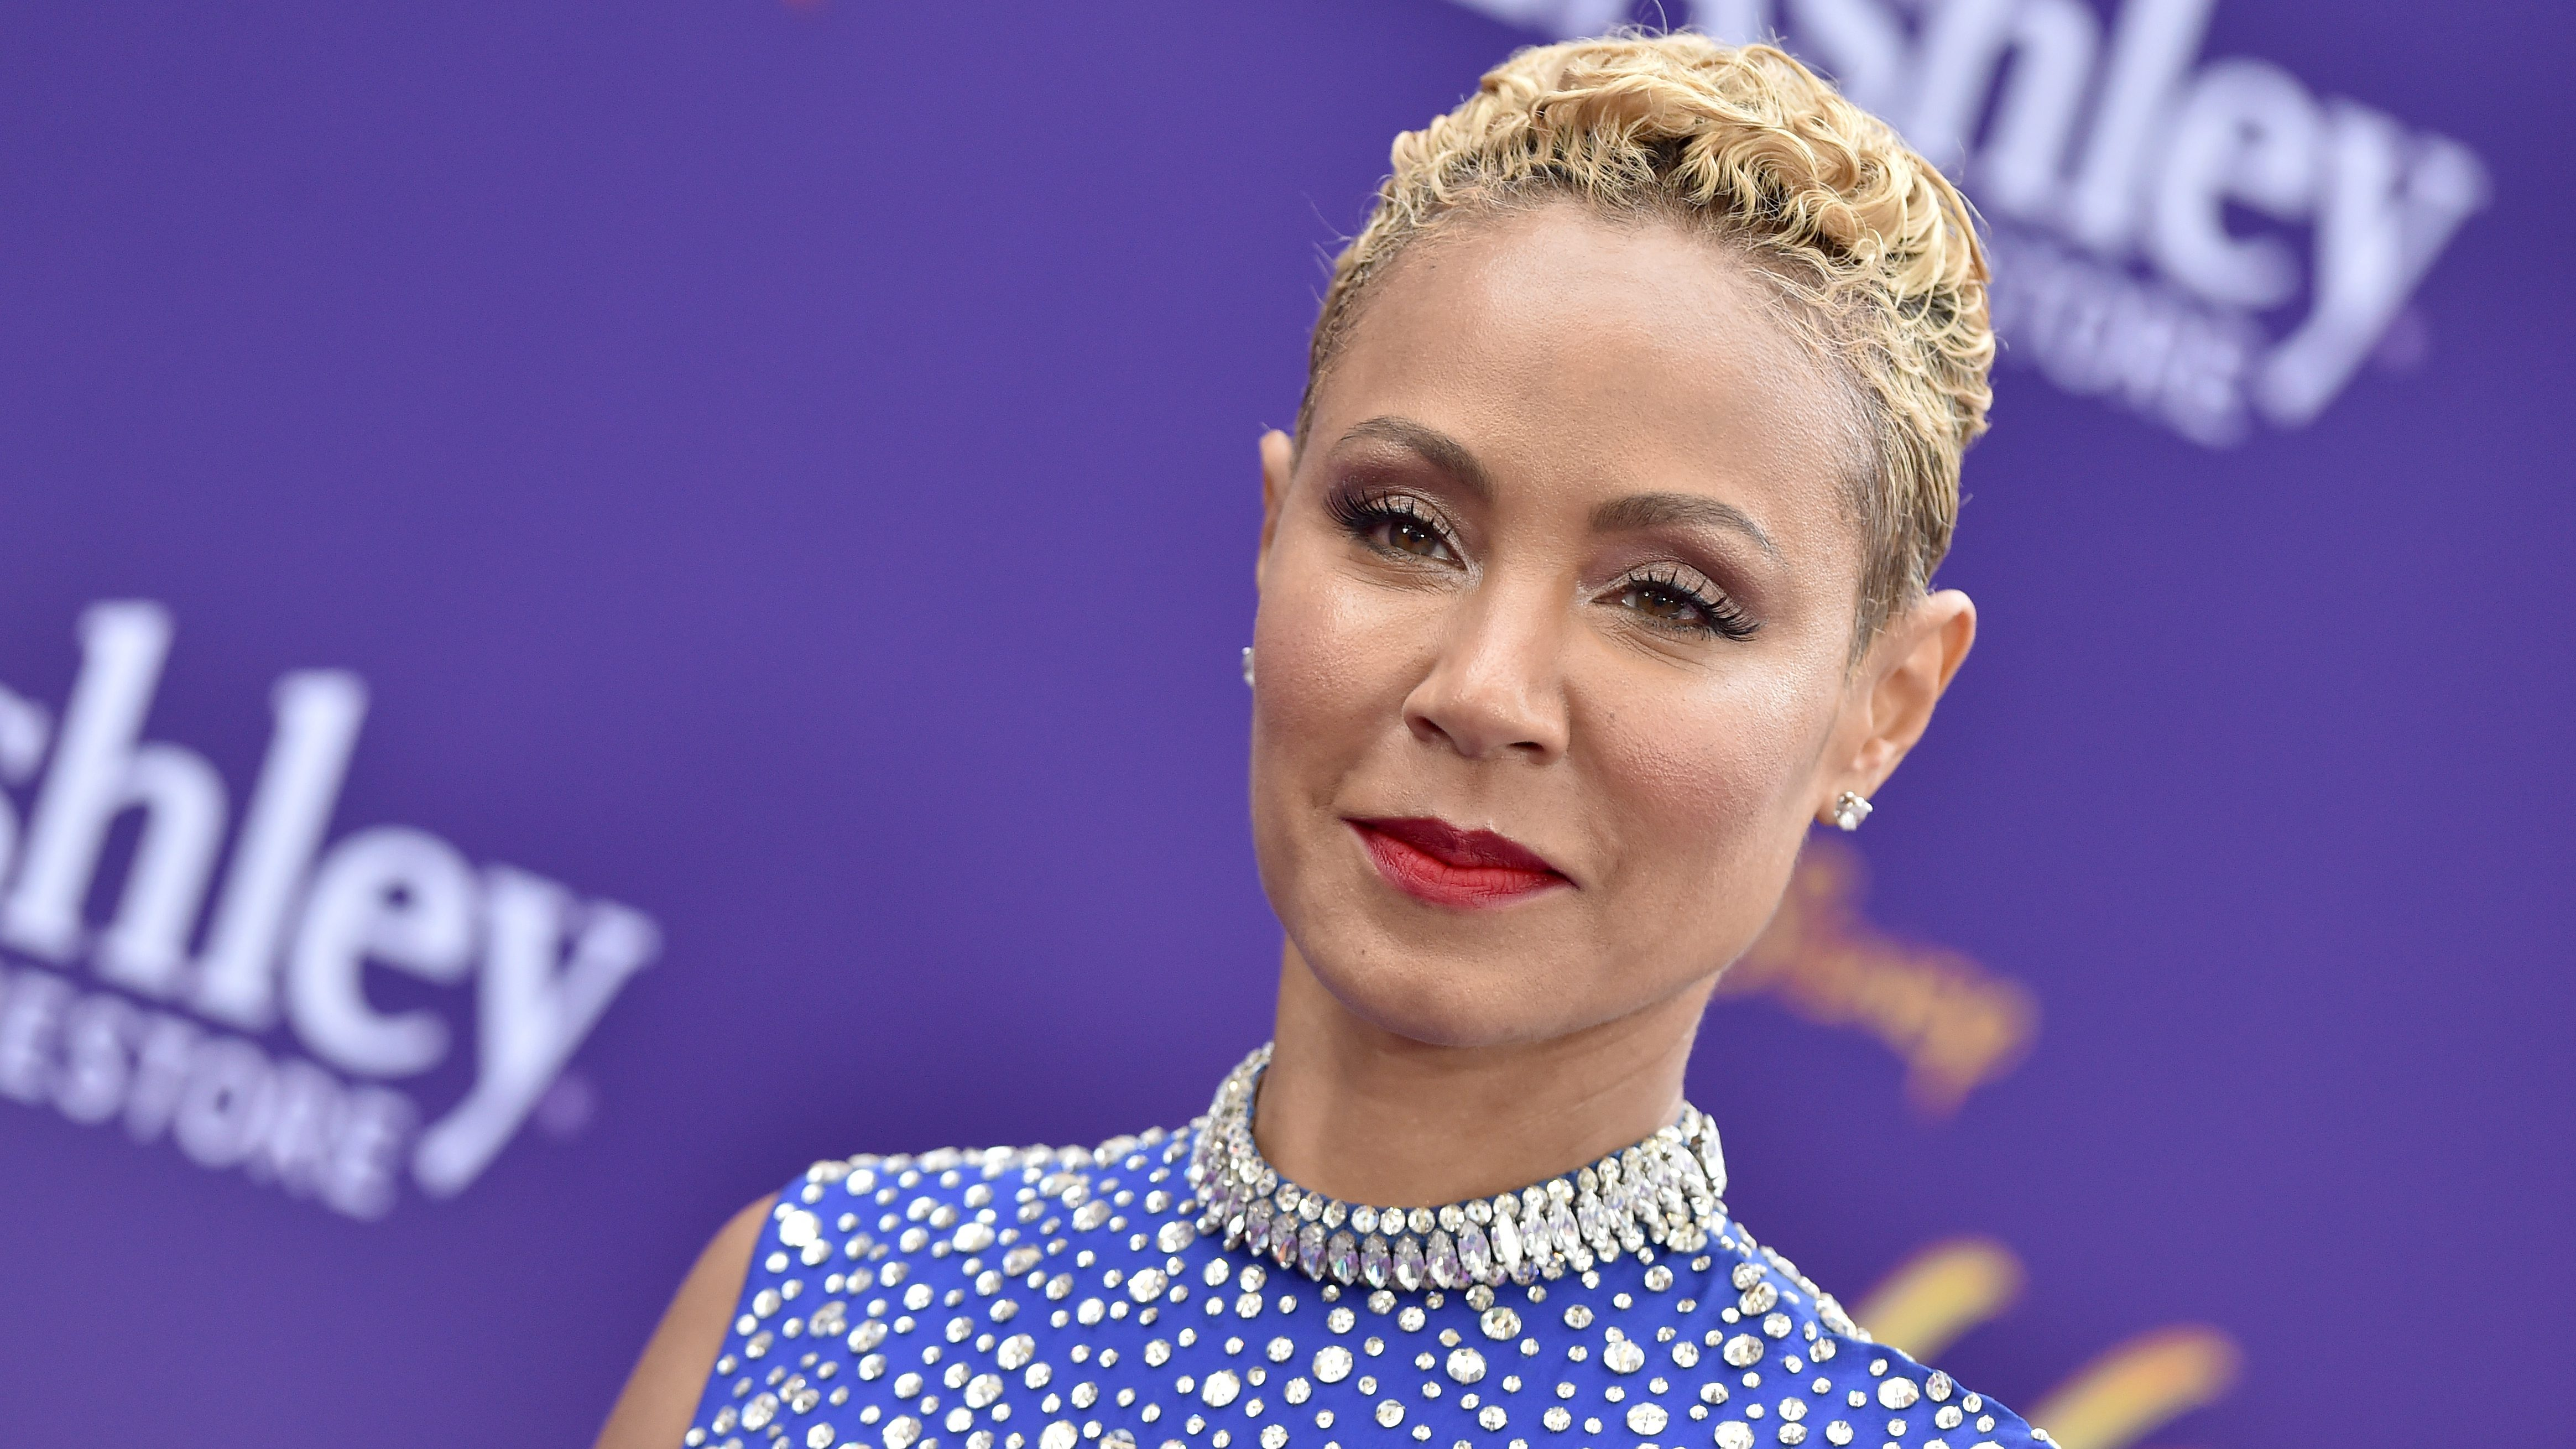 Jada Pinkett Smith Reveals She Once Cheated on 'Someone She Really Cared About'